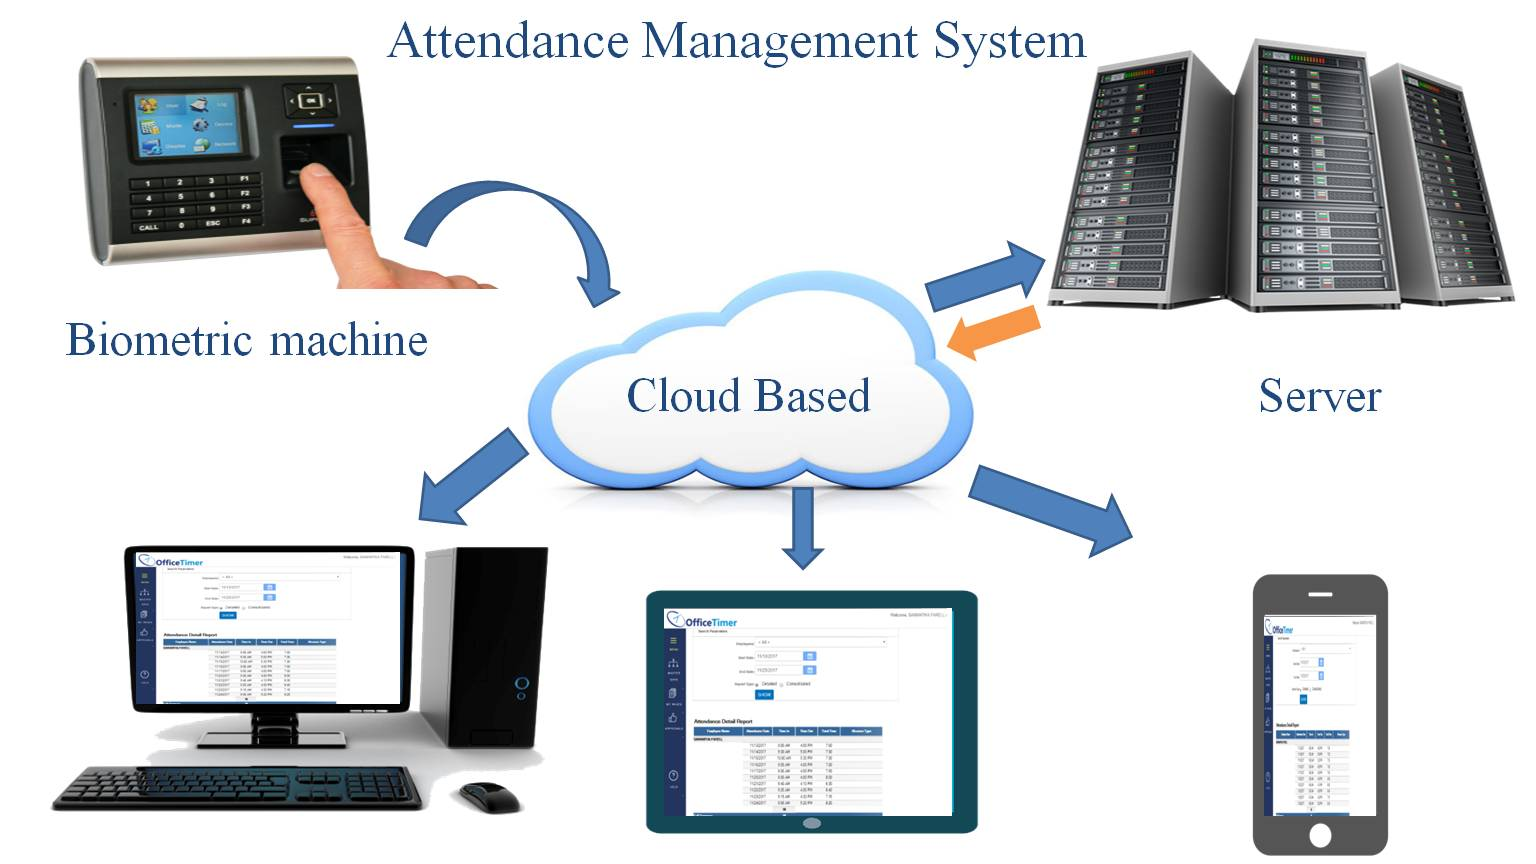 Employee Attendance Why Ignoring Employee Attendance Management System Will Cost You